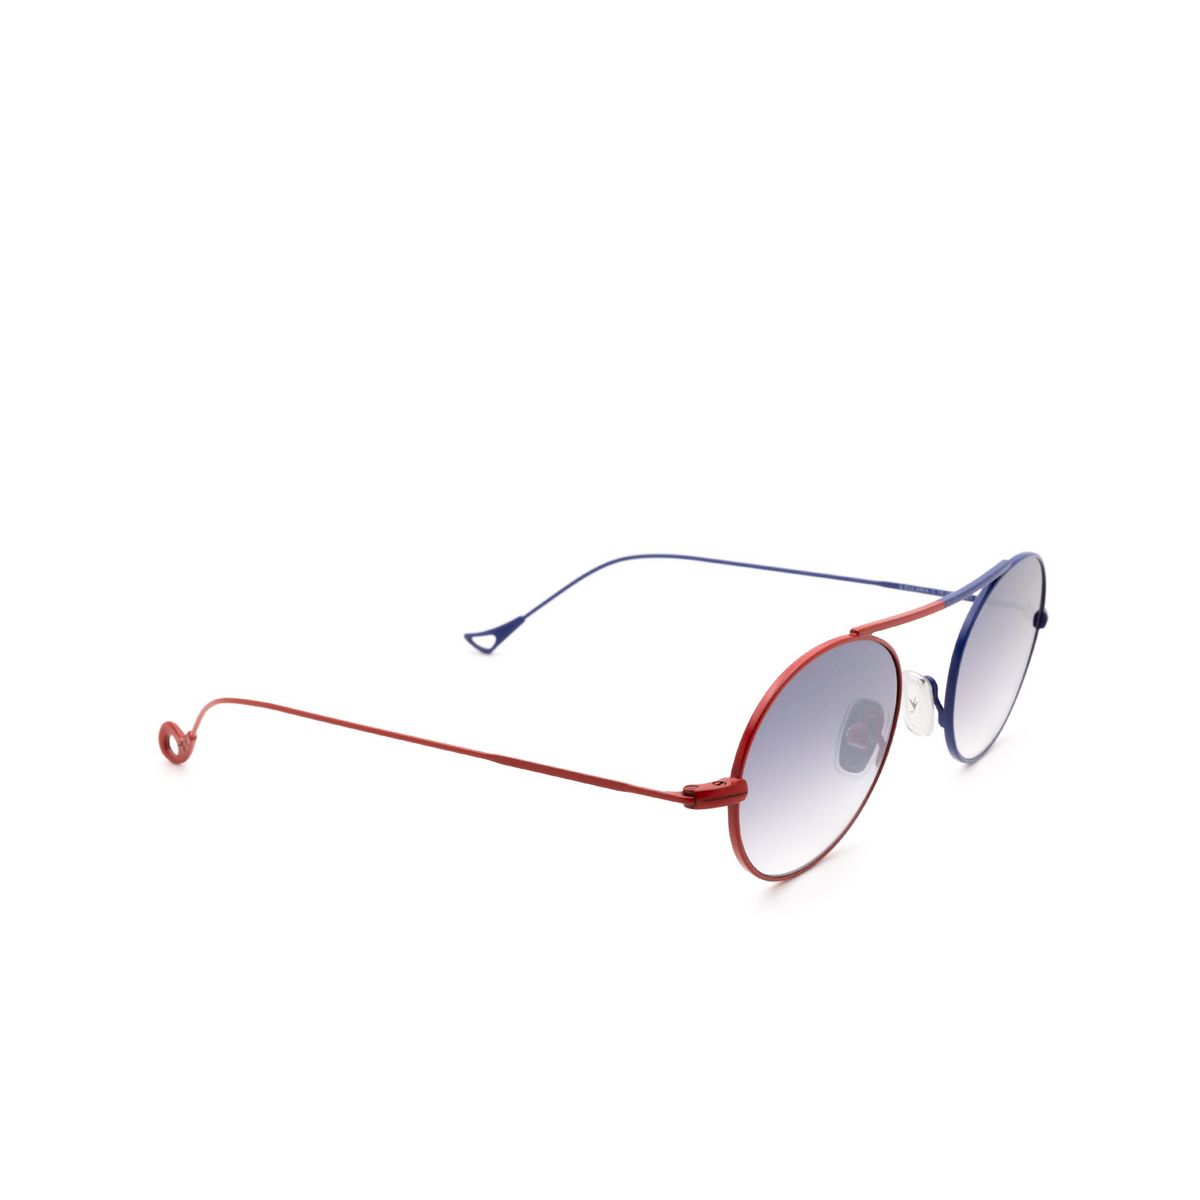 Eyepetizer® Oval Sunglasses: S.eularia color Red & Blue C.18-27F - three-quarters view.